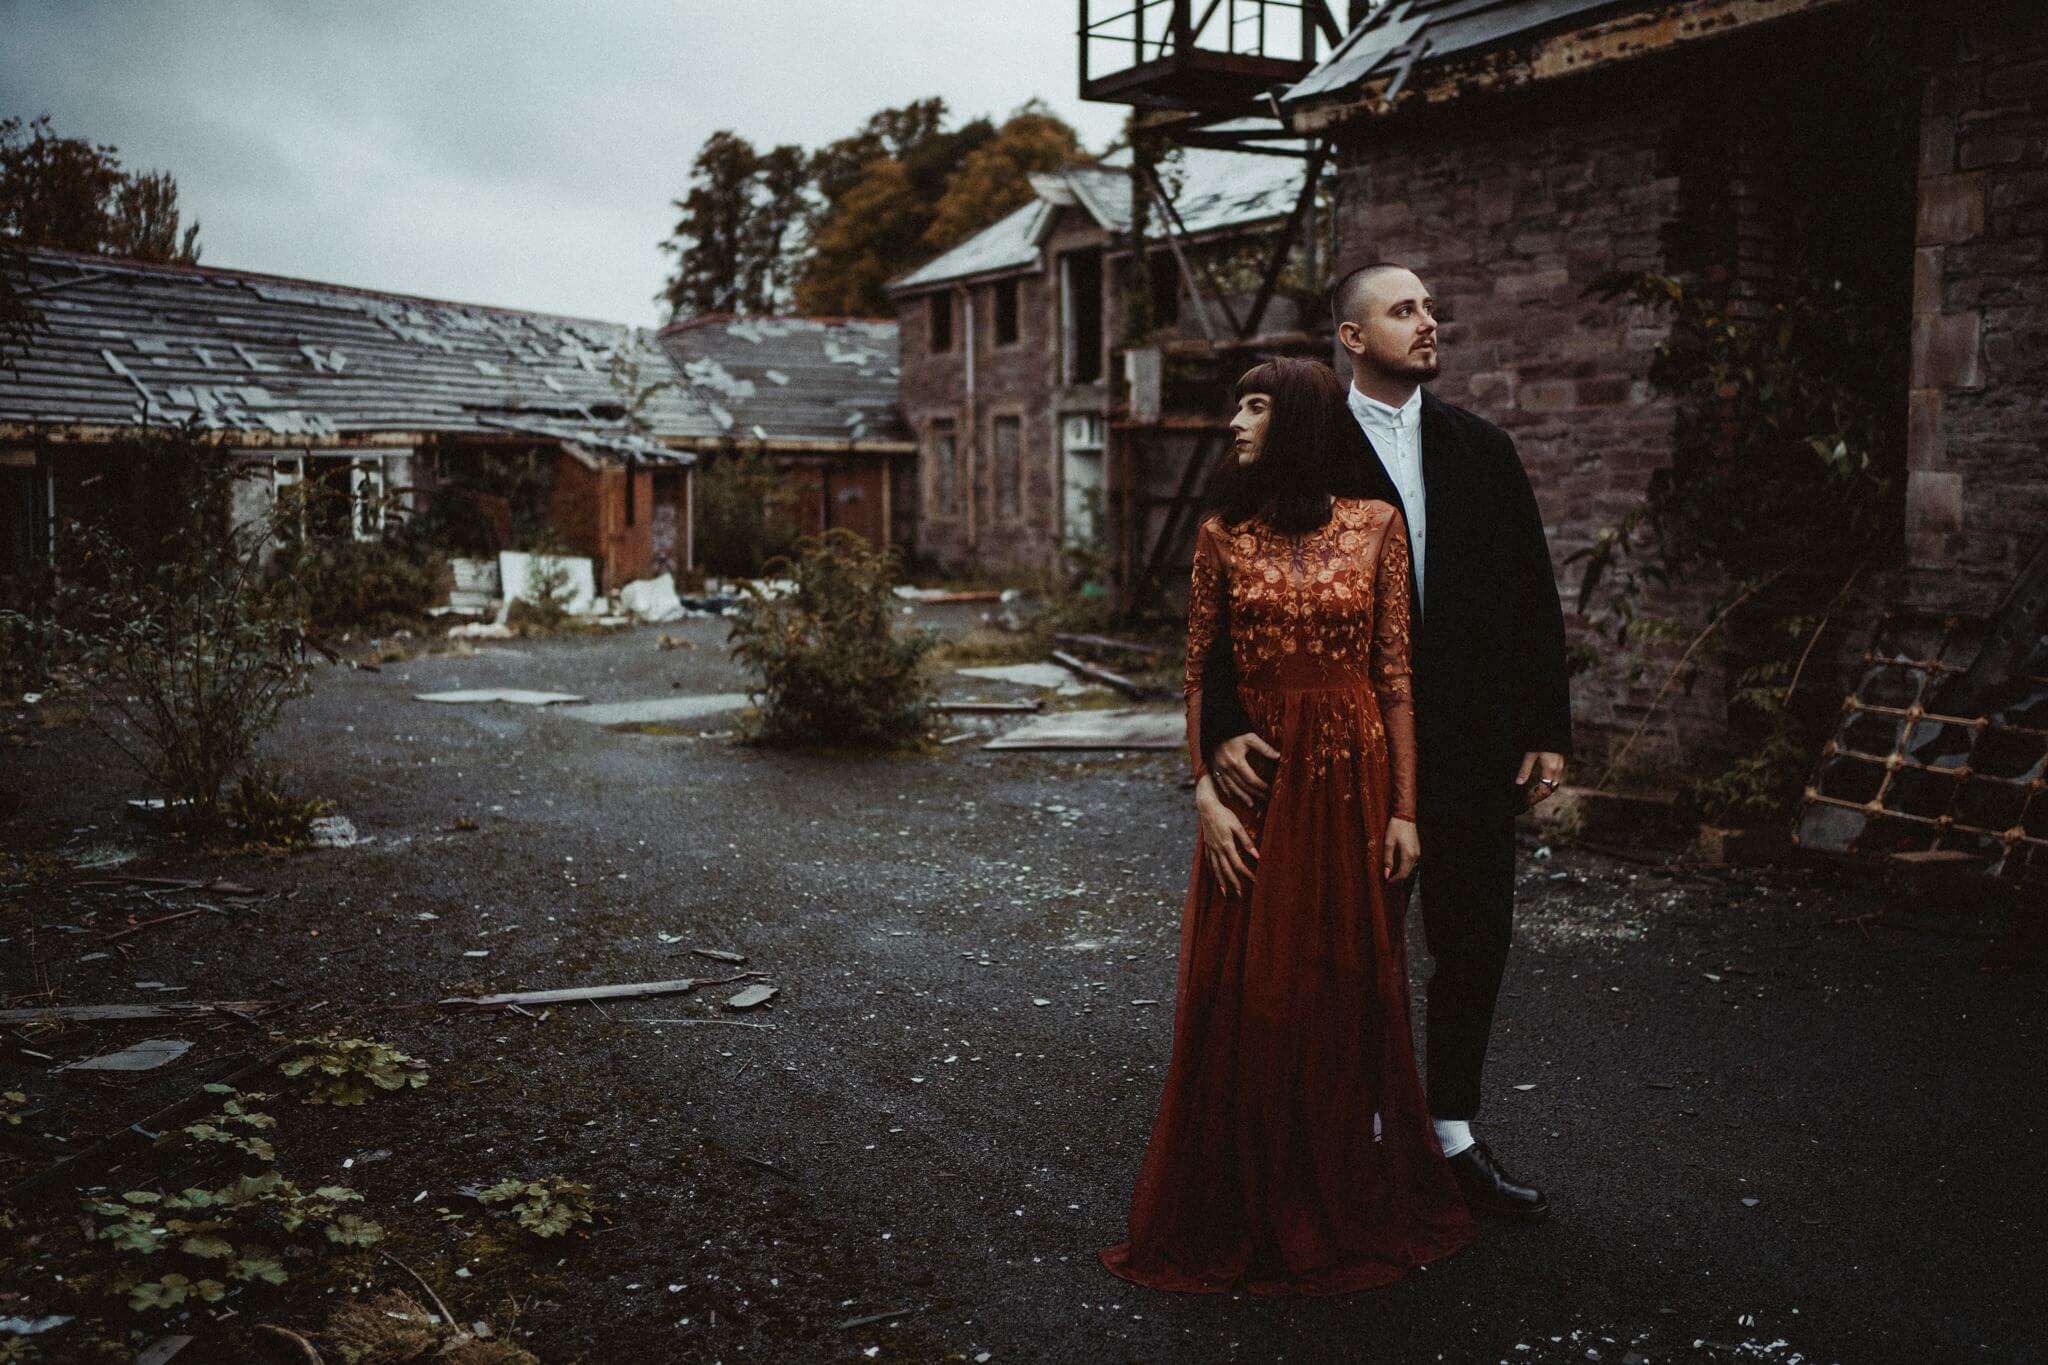 wedding-photographer-and-videographer-Talgarth-mental-asylum-06